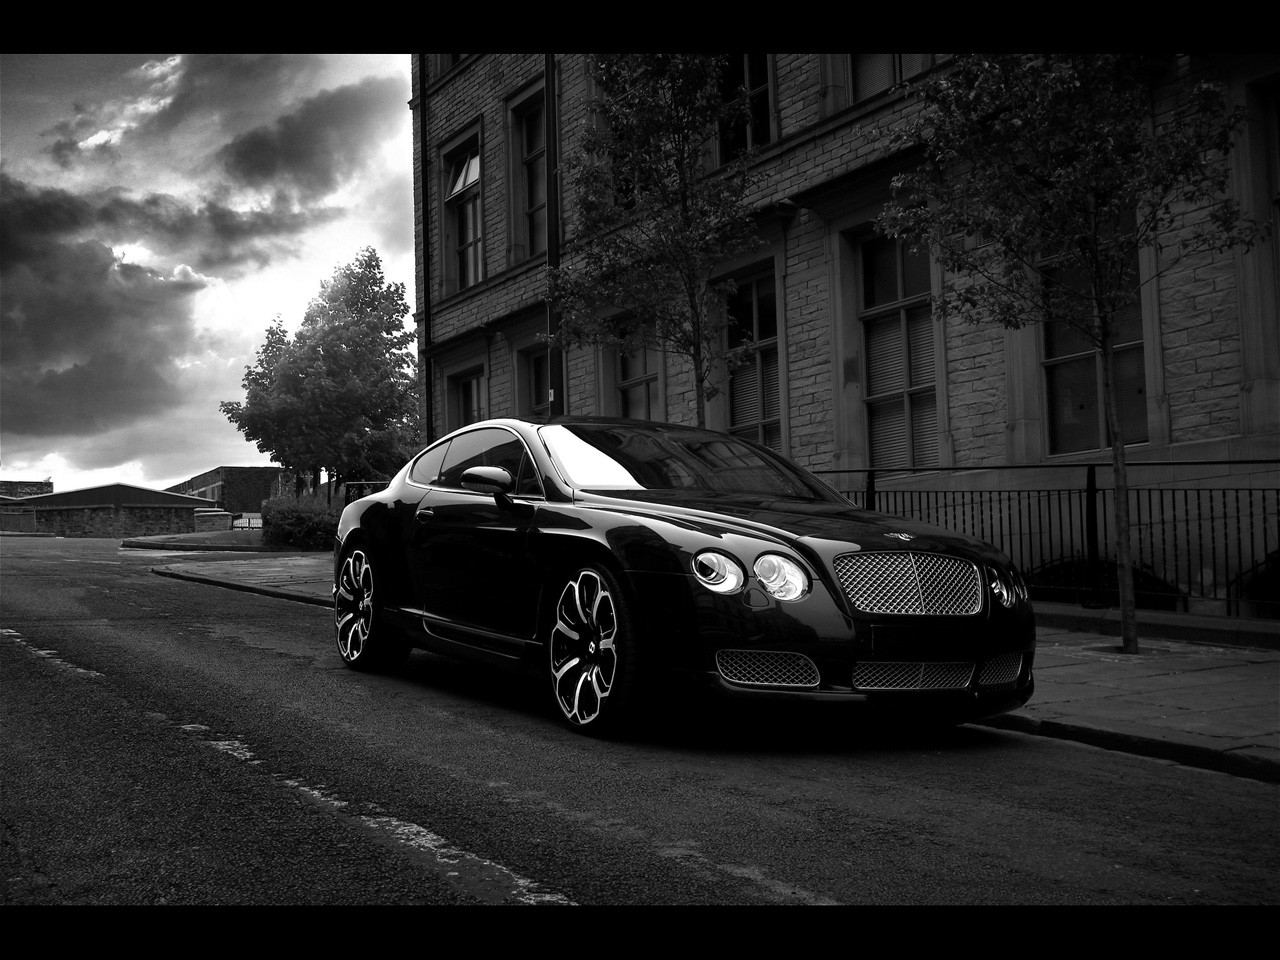 Black Cars Wallpaper 7 Background: Black And White Cars 42 Background Wallpaper